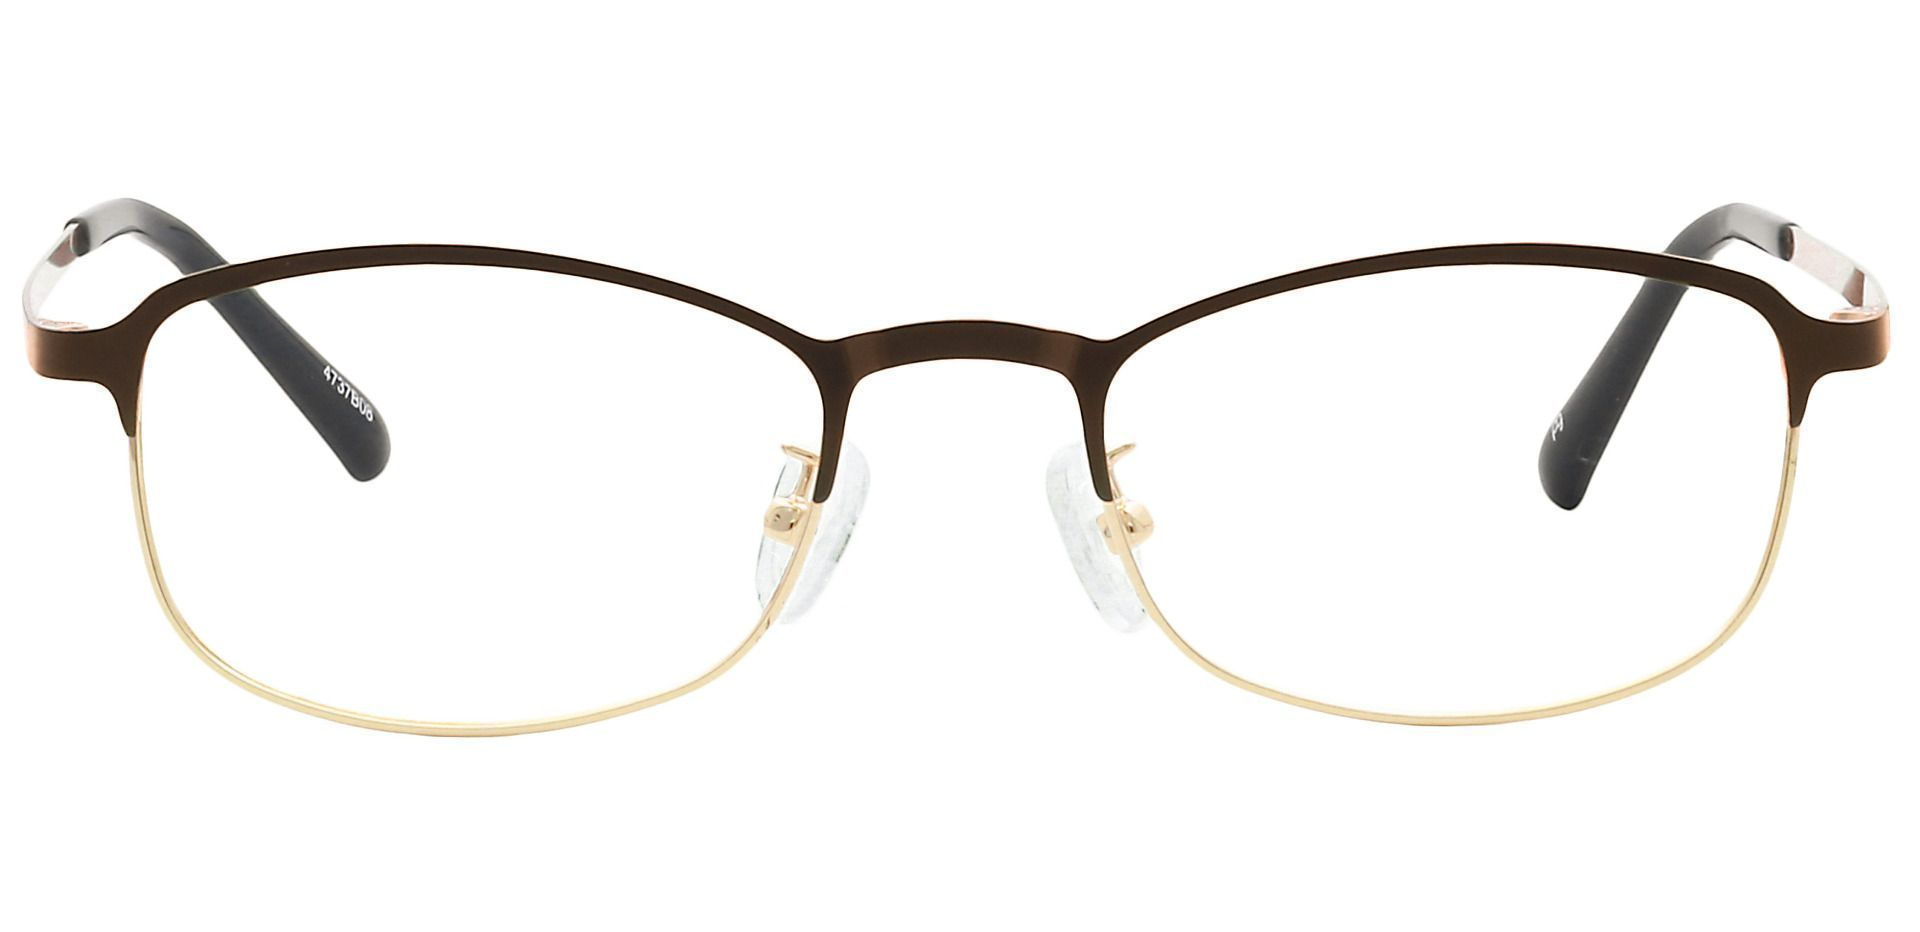 Tyrell Oval Lined Bifocal Glasses - Brown